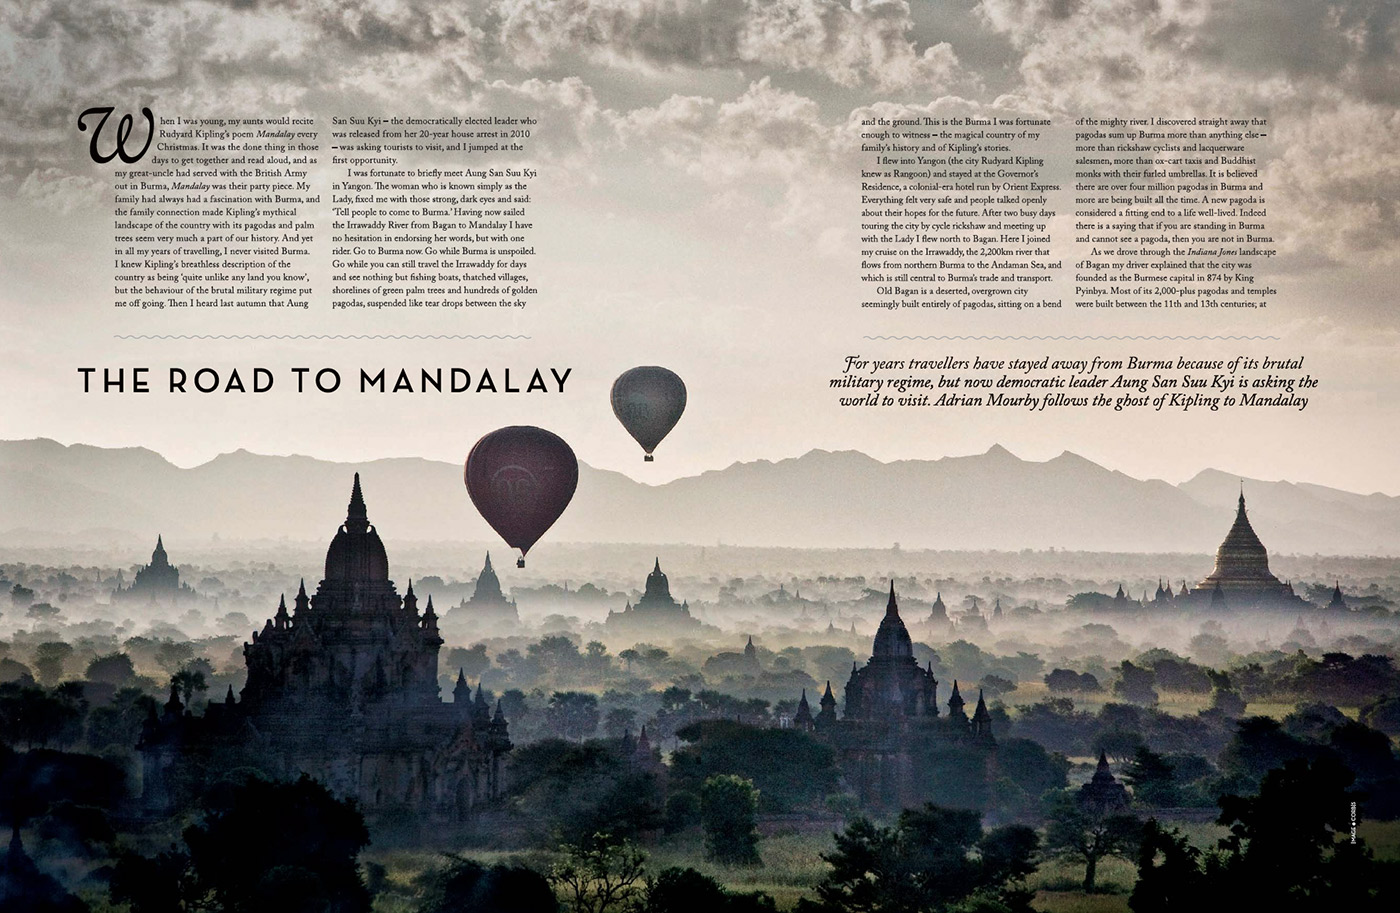 magazine article on Burma